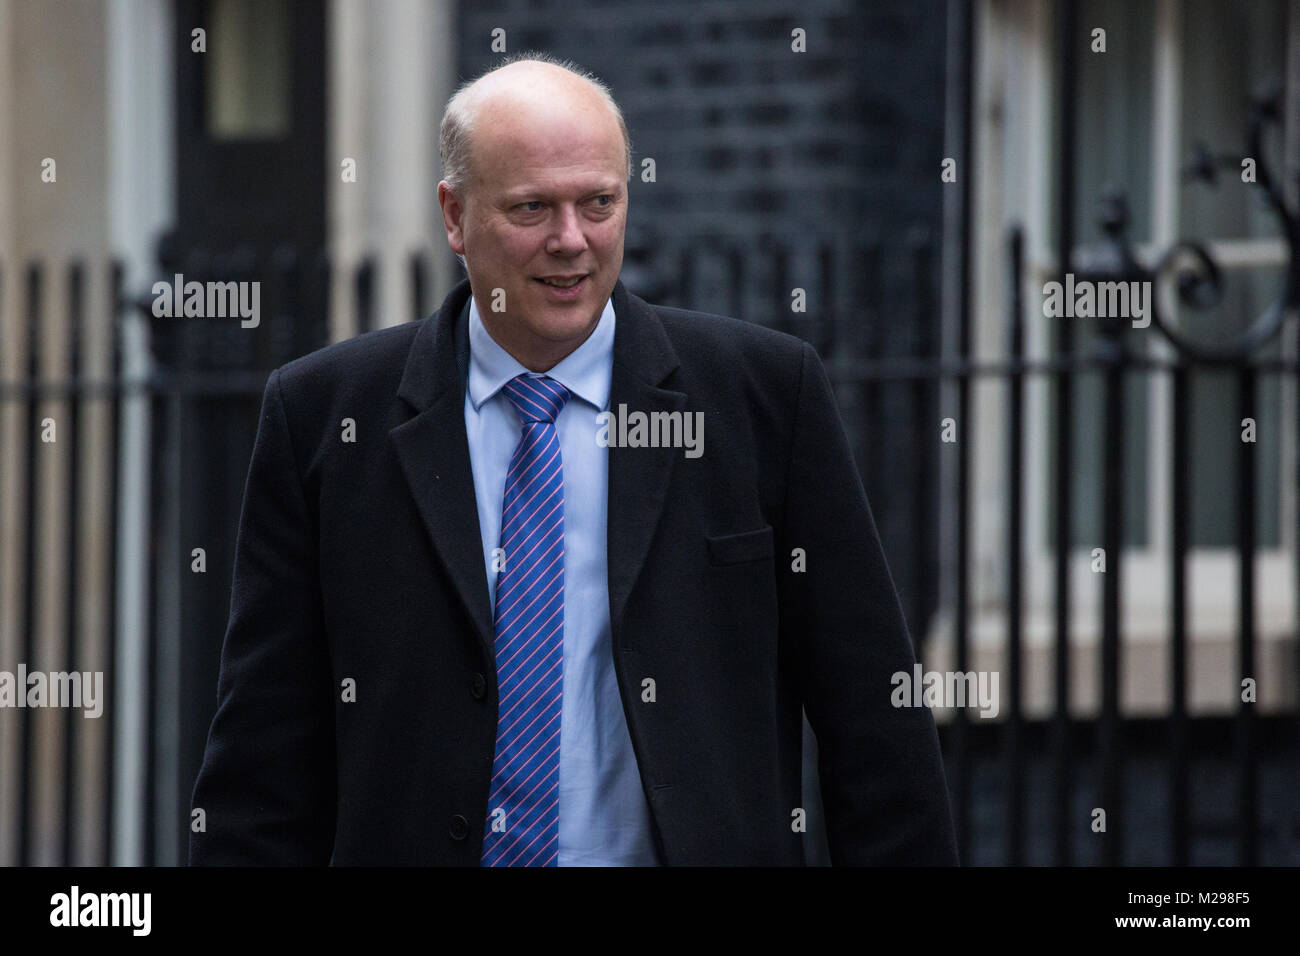 London, UK. 6th February, 2018. Chris Grayling MP, Secretary of State for Transport, leaves 10 Downing Street following - Stock Image